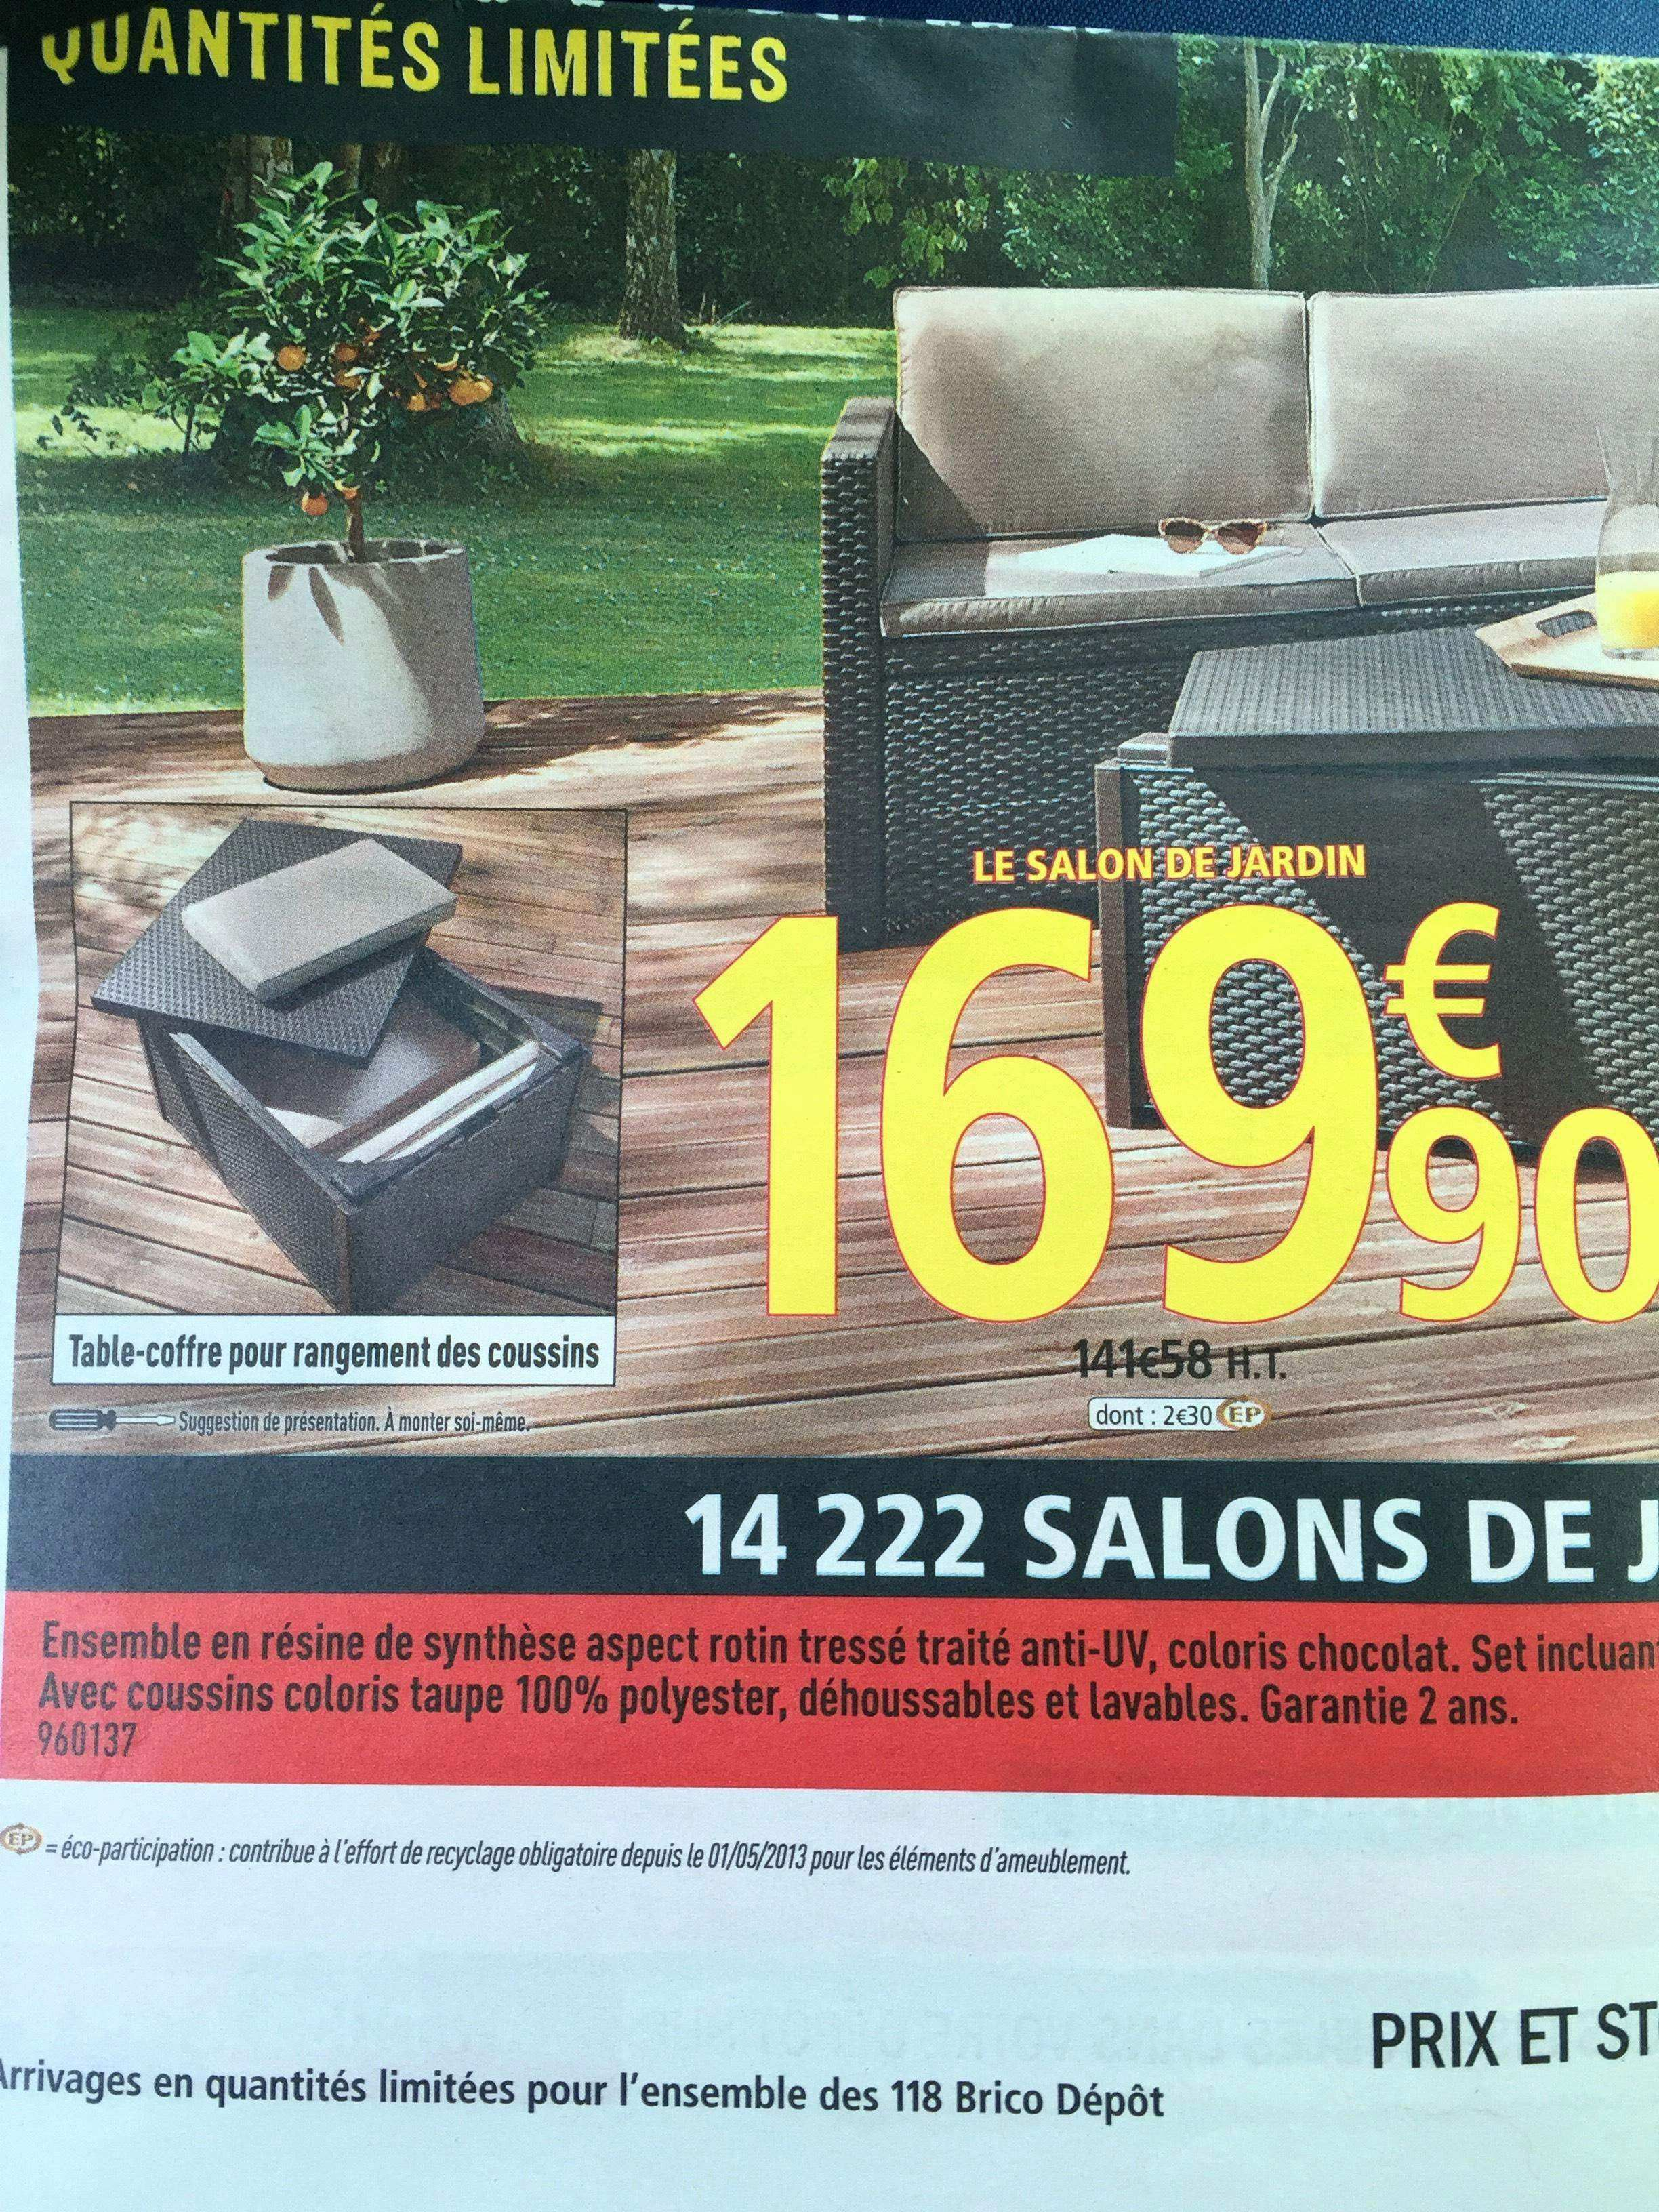 Unique Promo Salon De Jardin Brico Depot Small Garden Shelter Outdoor Furniture Sets Jardin